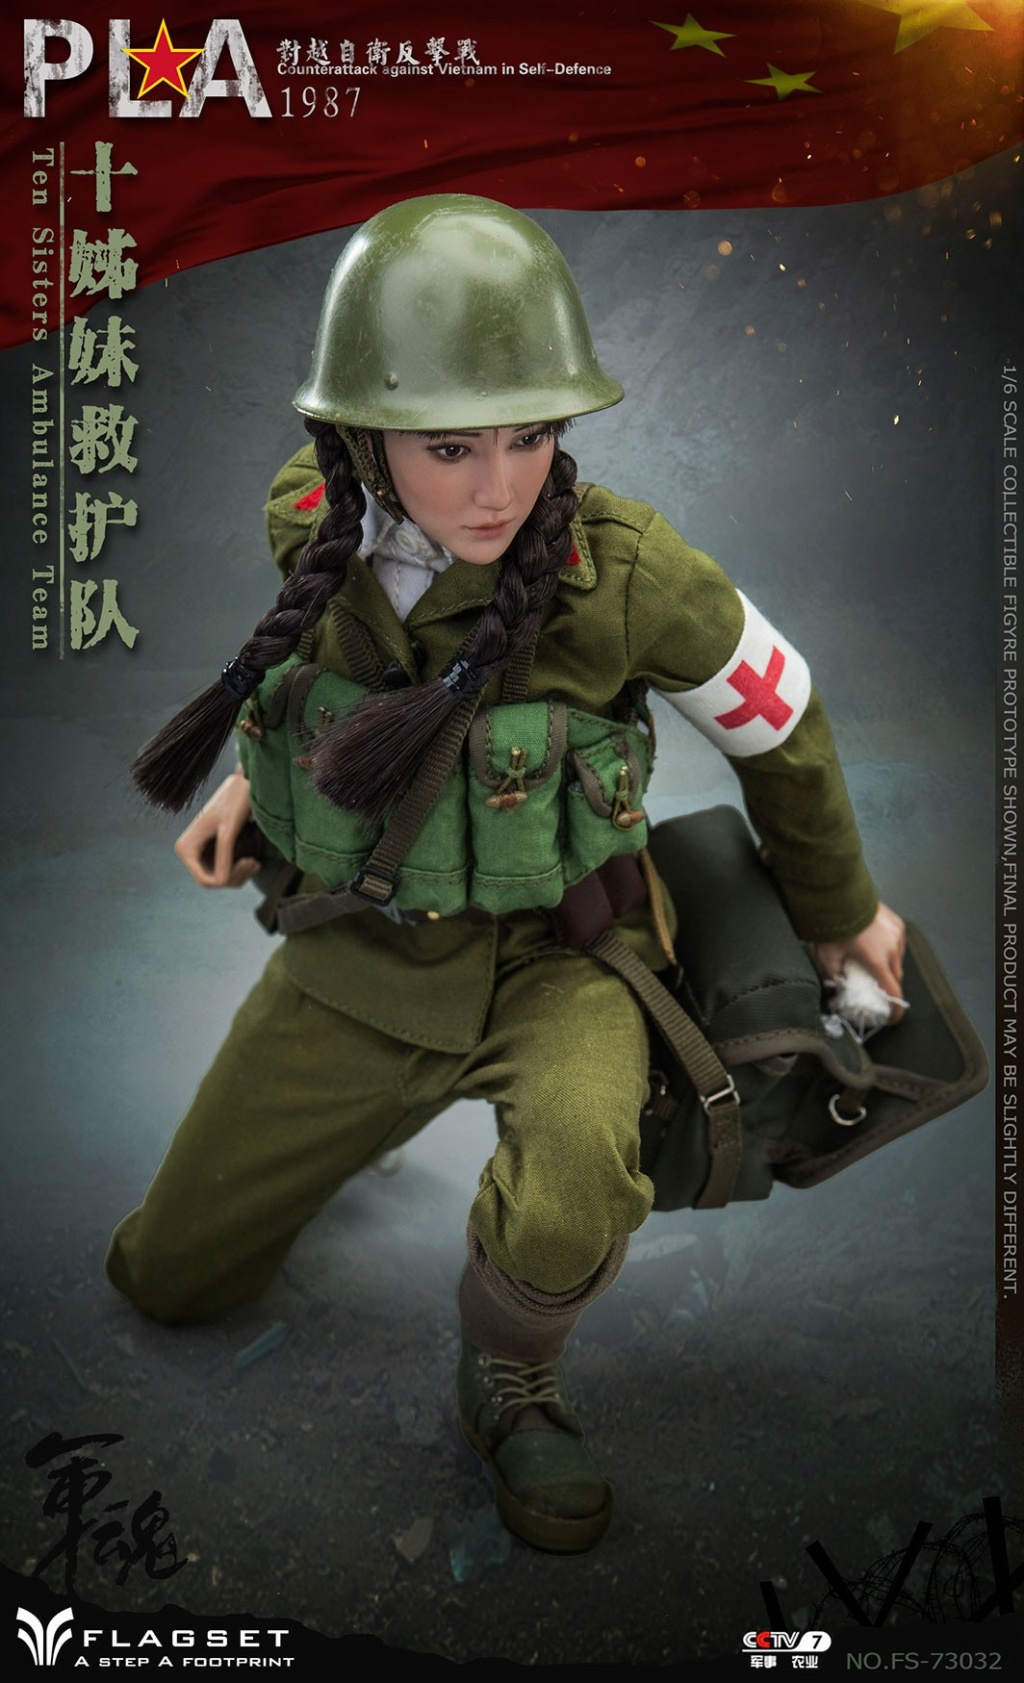 CounterAttack - NEW PRODUCT: Flagset: 1/6 counterattack against Vietnam-female soldiers of the ten sisters rescue team of the Chinese People's Liberation Army (FS73032#) 06540010